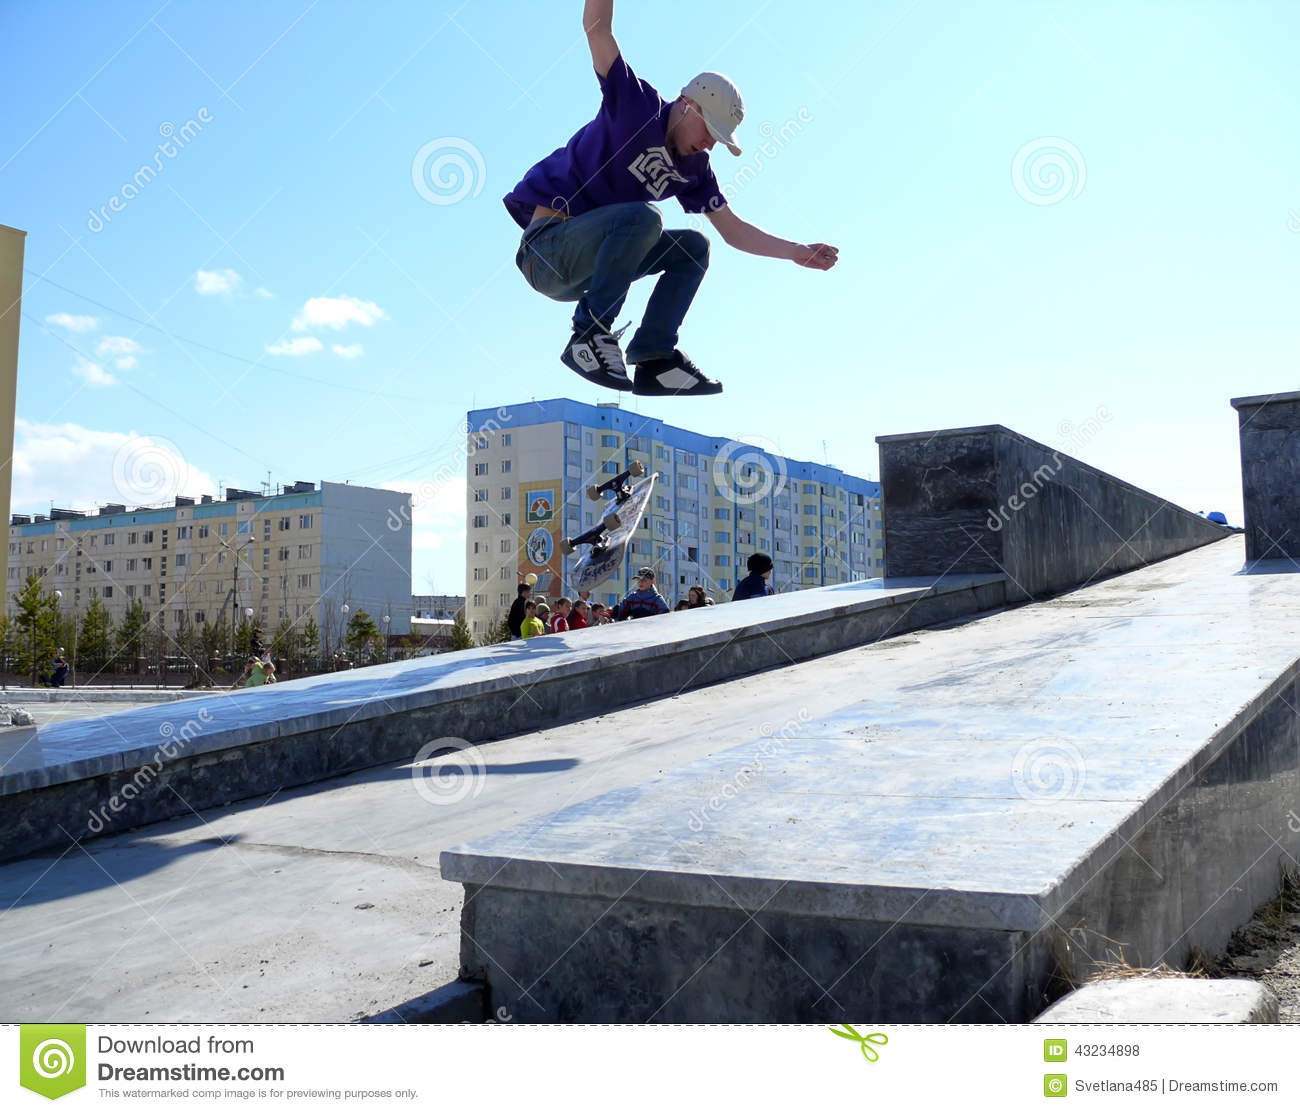 Nadym, Russia - May 17, 2008: Jumping on Board with a springboar